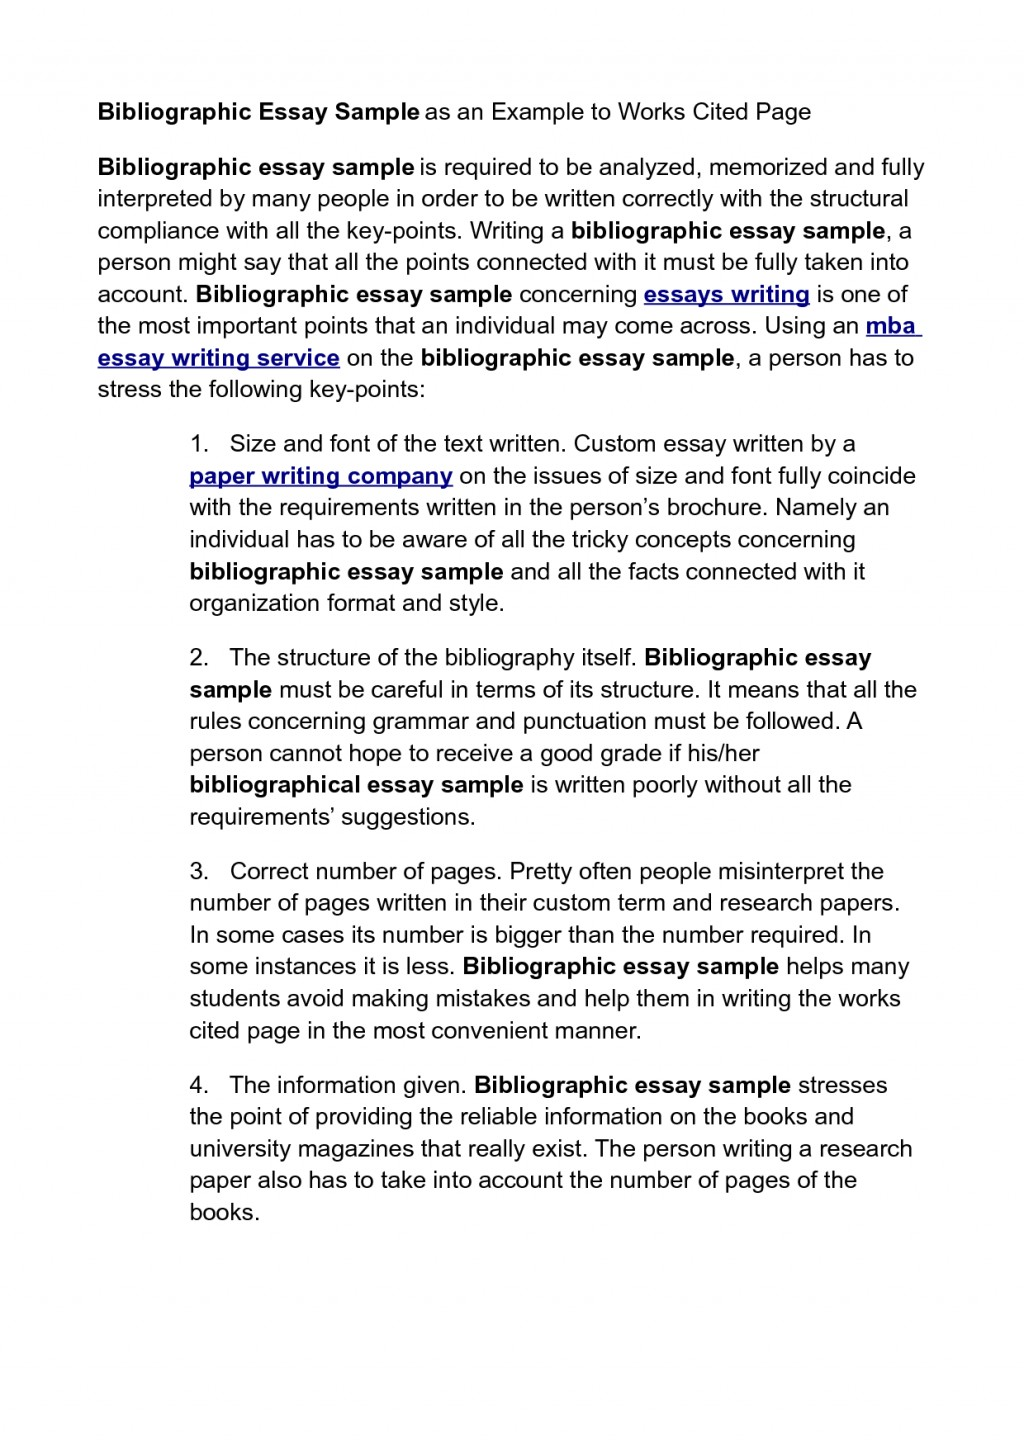 018 How To Cite An Essay Example Sample Persuasive With Works Cited Of Mla L Archaicawful In A Textbook Within Book Apa 8 Large